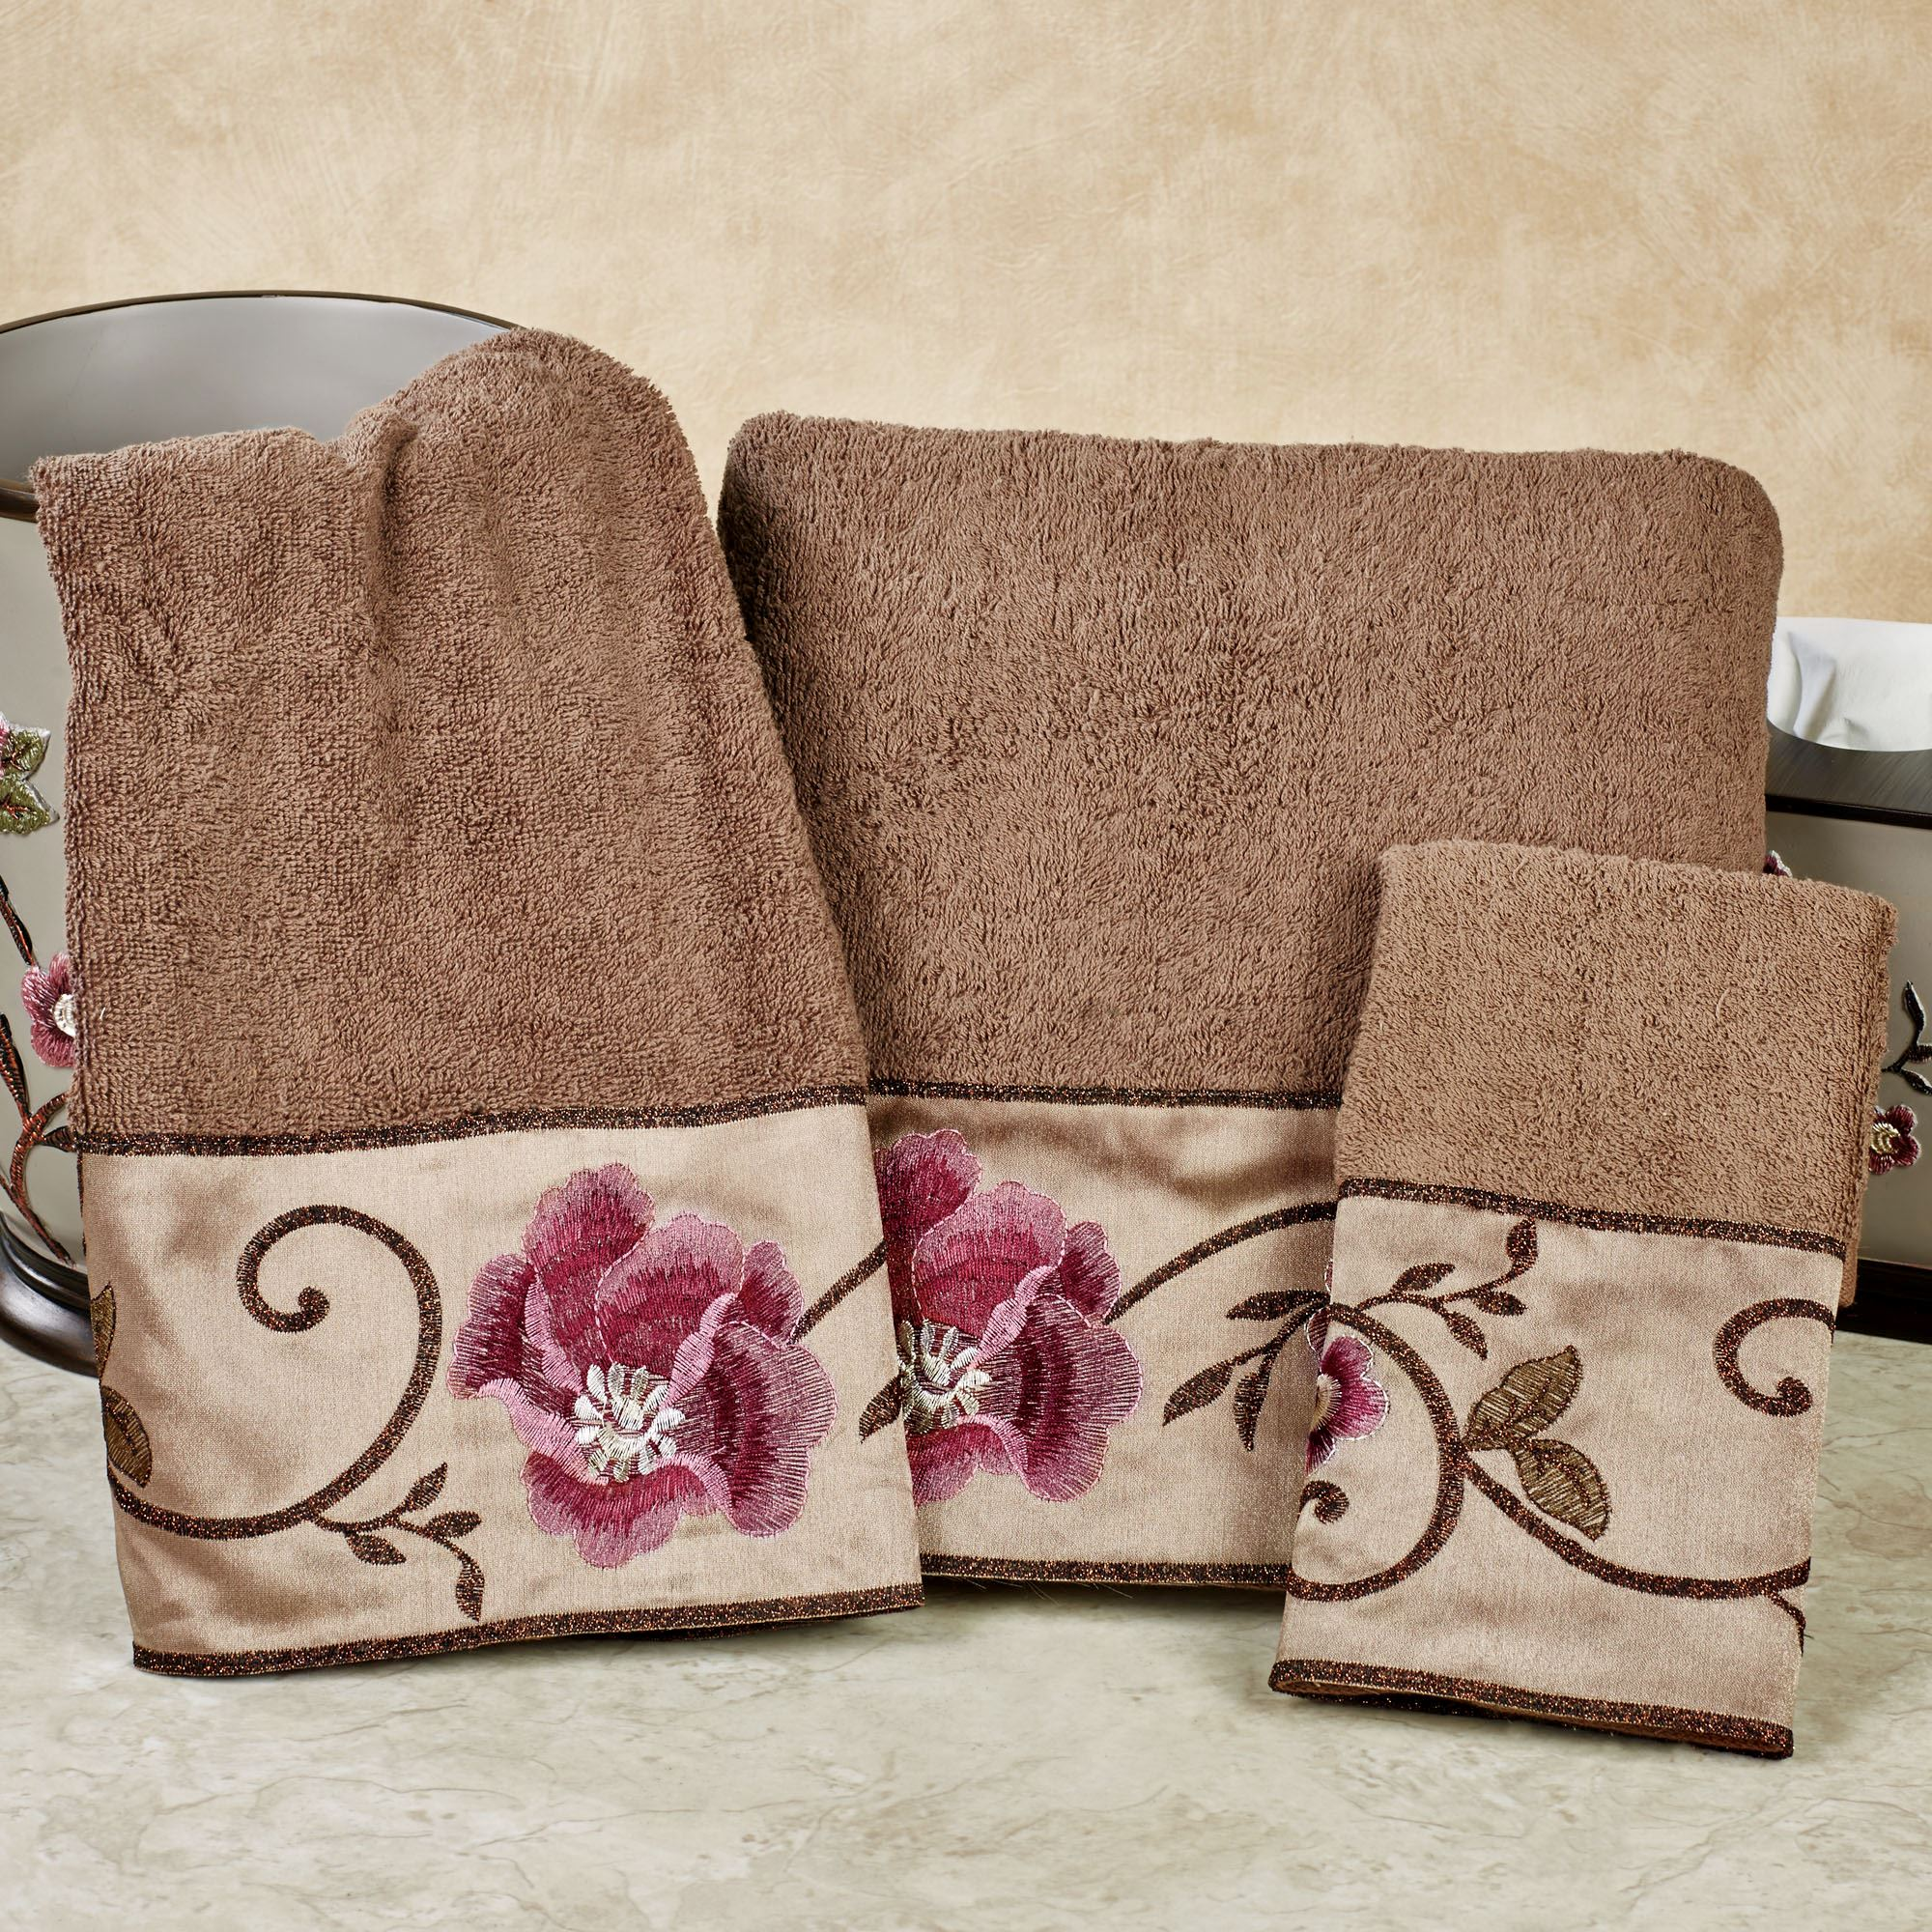 Larissa Embroidered Floral Bath Towel Set